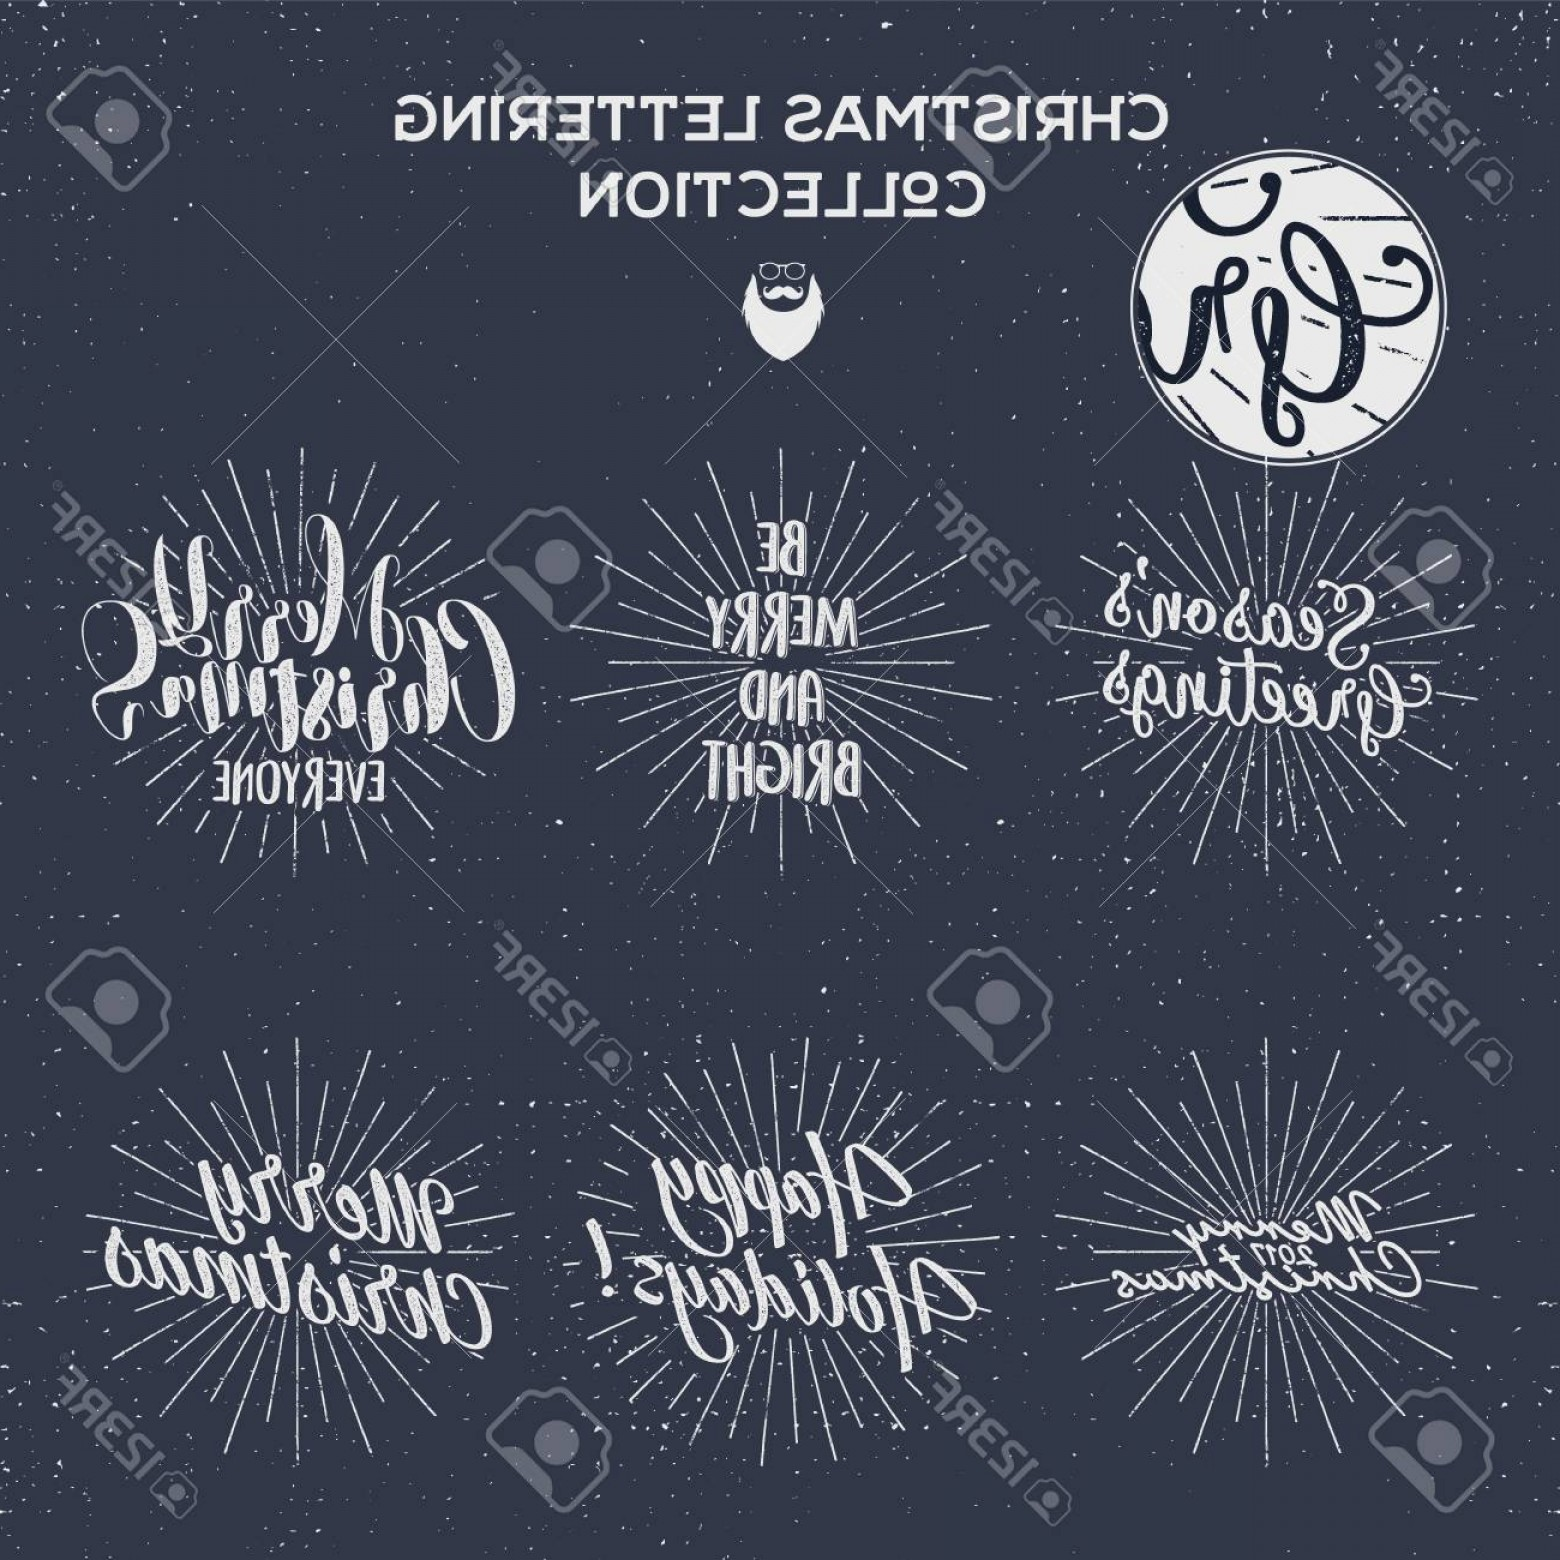 Christmas Vector Sayingd: Photostock Vector Set Of Christmas New Year Lettering Wishes Sayings And Vintage Labels Season S Greetings Callig